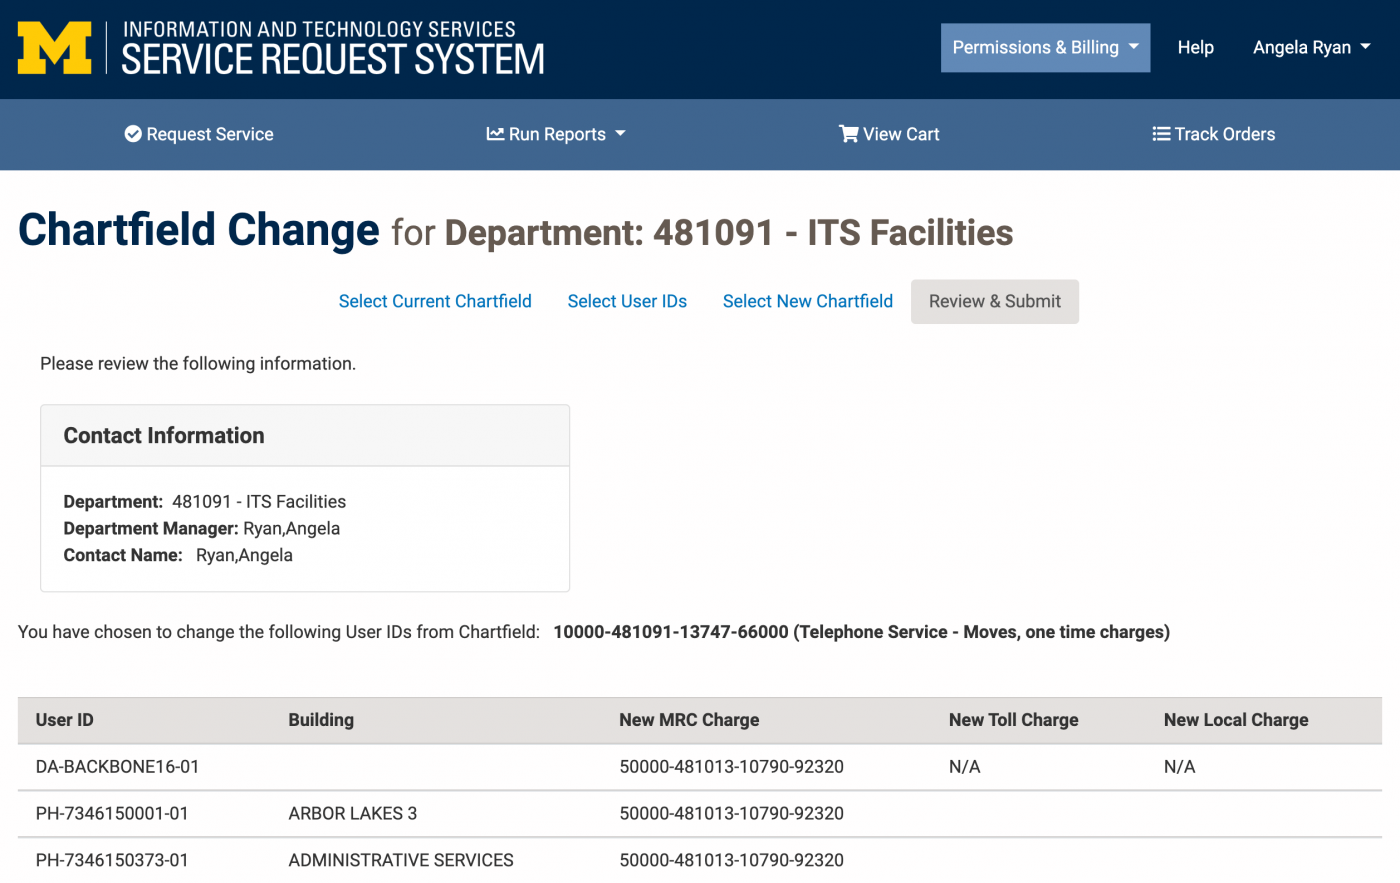 Screenshot of Review and Submit page of Chartfield Change Request